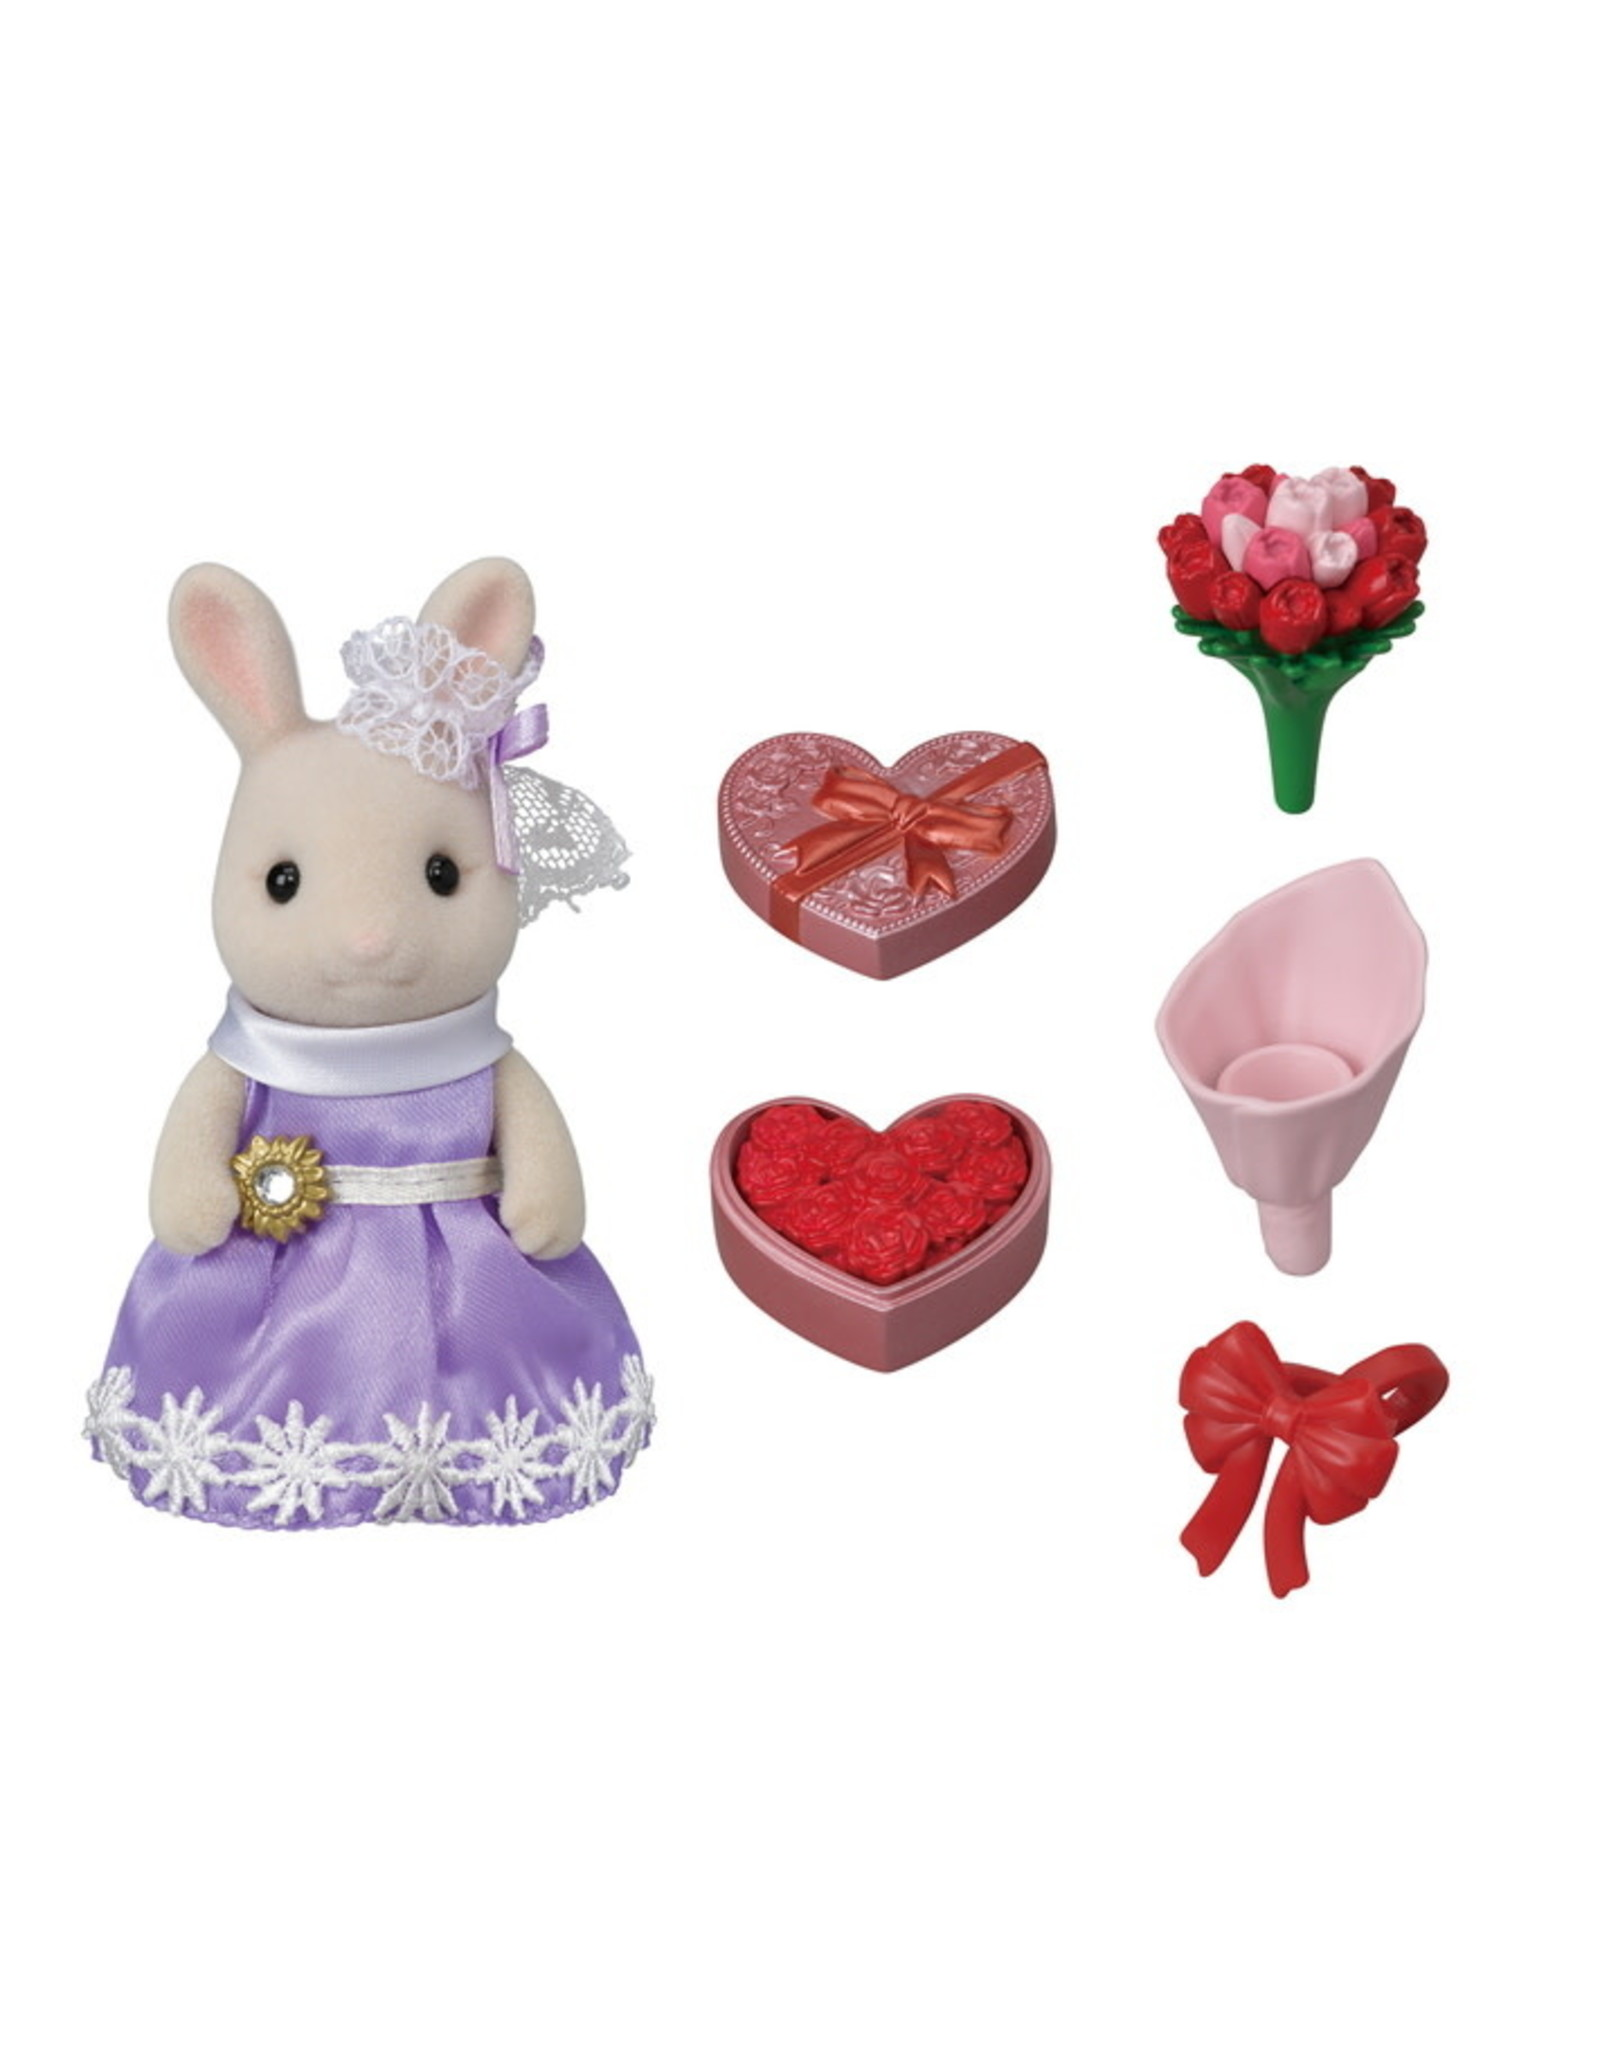 Calico Critters Calico Critters Flower Gifts Playset